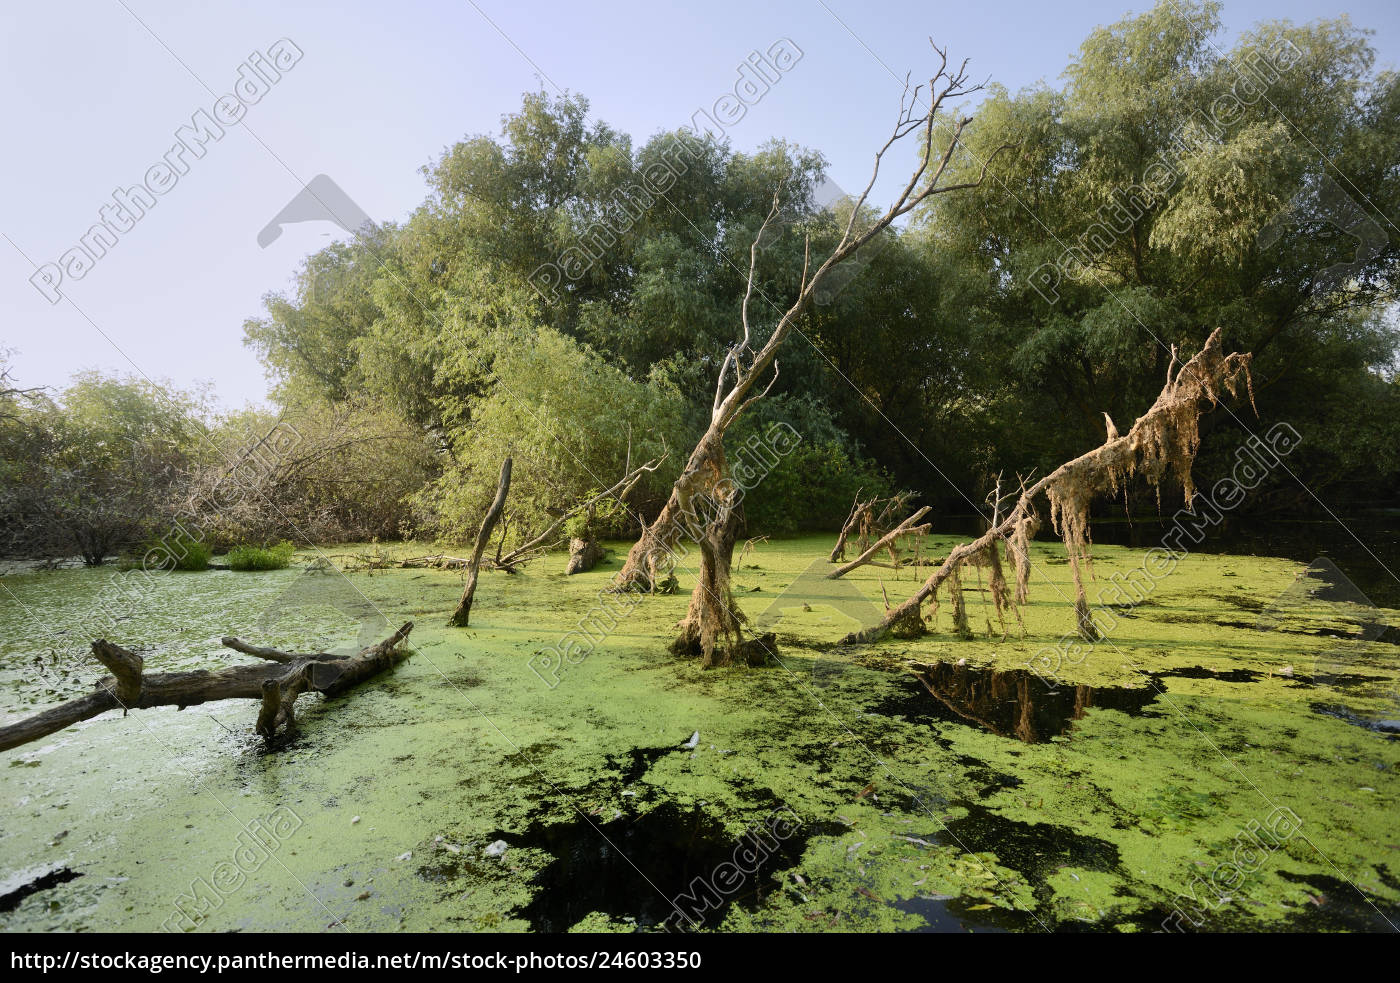 danube, delta, murighiol, romania, europe - 24603350